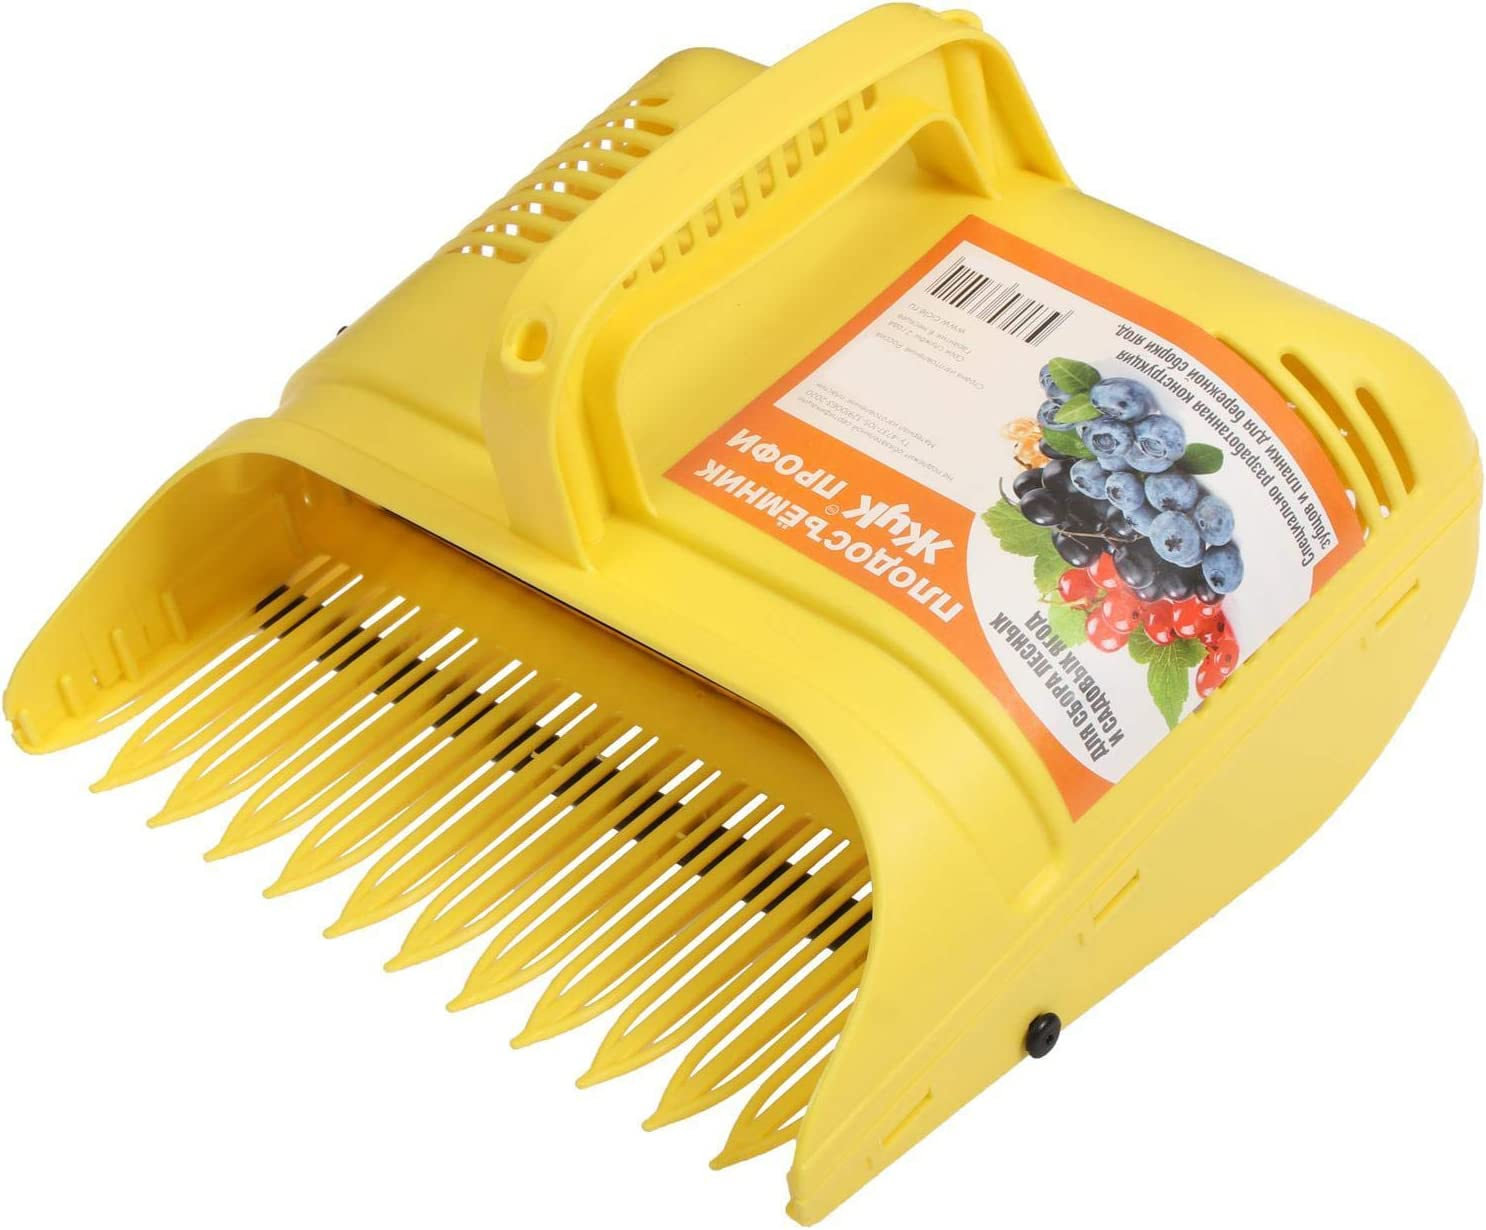 byMall Plastic Berry Pickers and rakes with Ergonomic Soft Touch Handle and Reinforced Coated Teeth for Picking Berries: Cranberries Blueberries lingonberries Strawberries Blackberries Currants